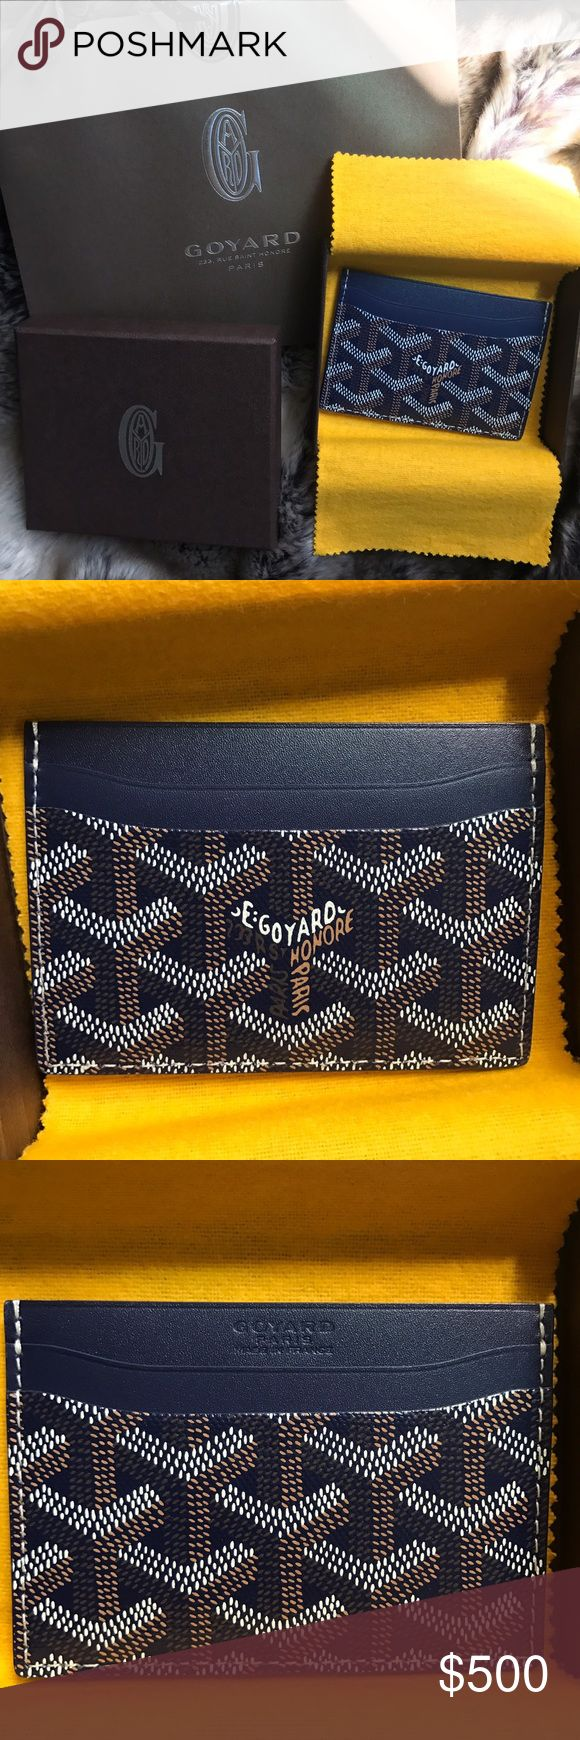 Maison Goyard St Surplice Navy Credit Card Holder Brand new with tags. 1000% authentic. No trades. Goyard Accessories Key & Card Holders